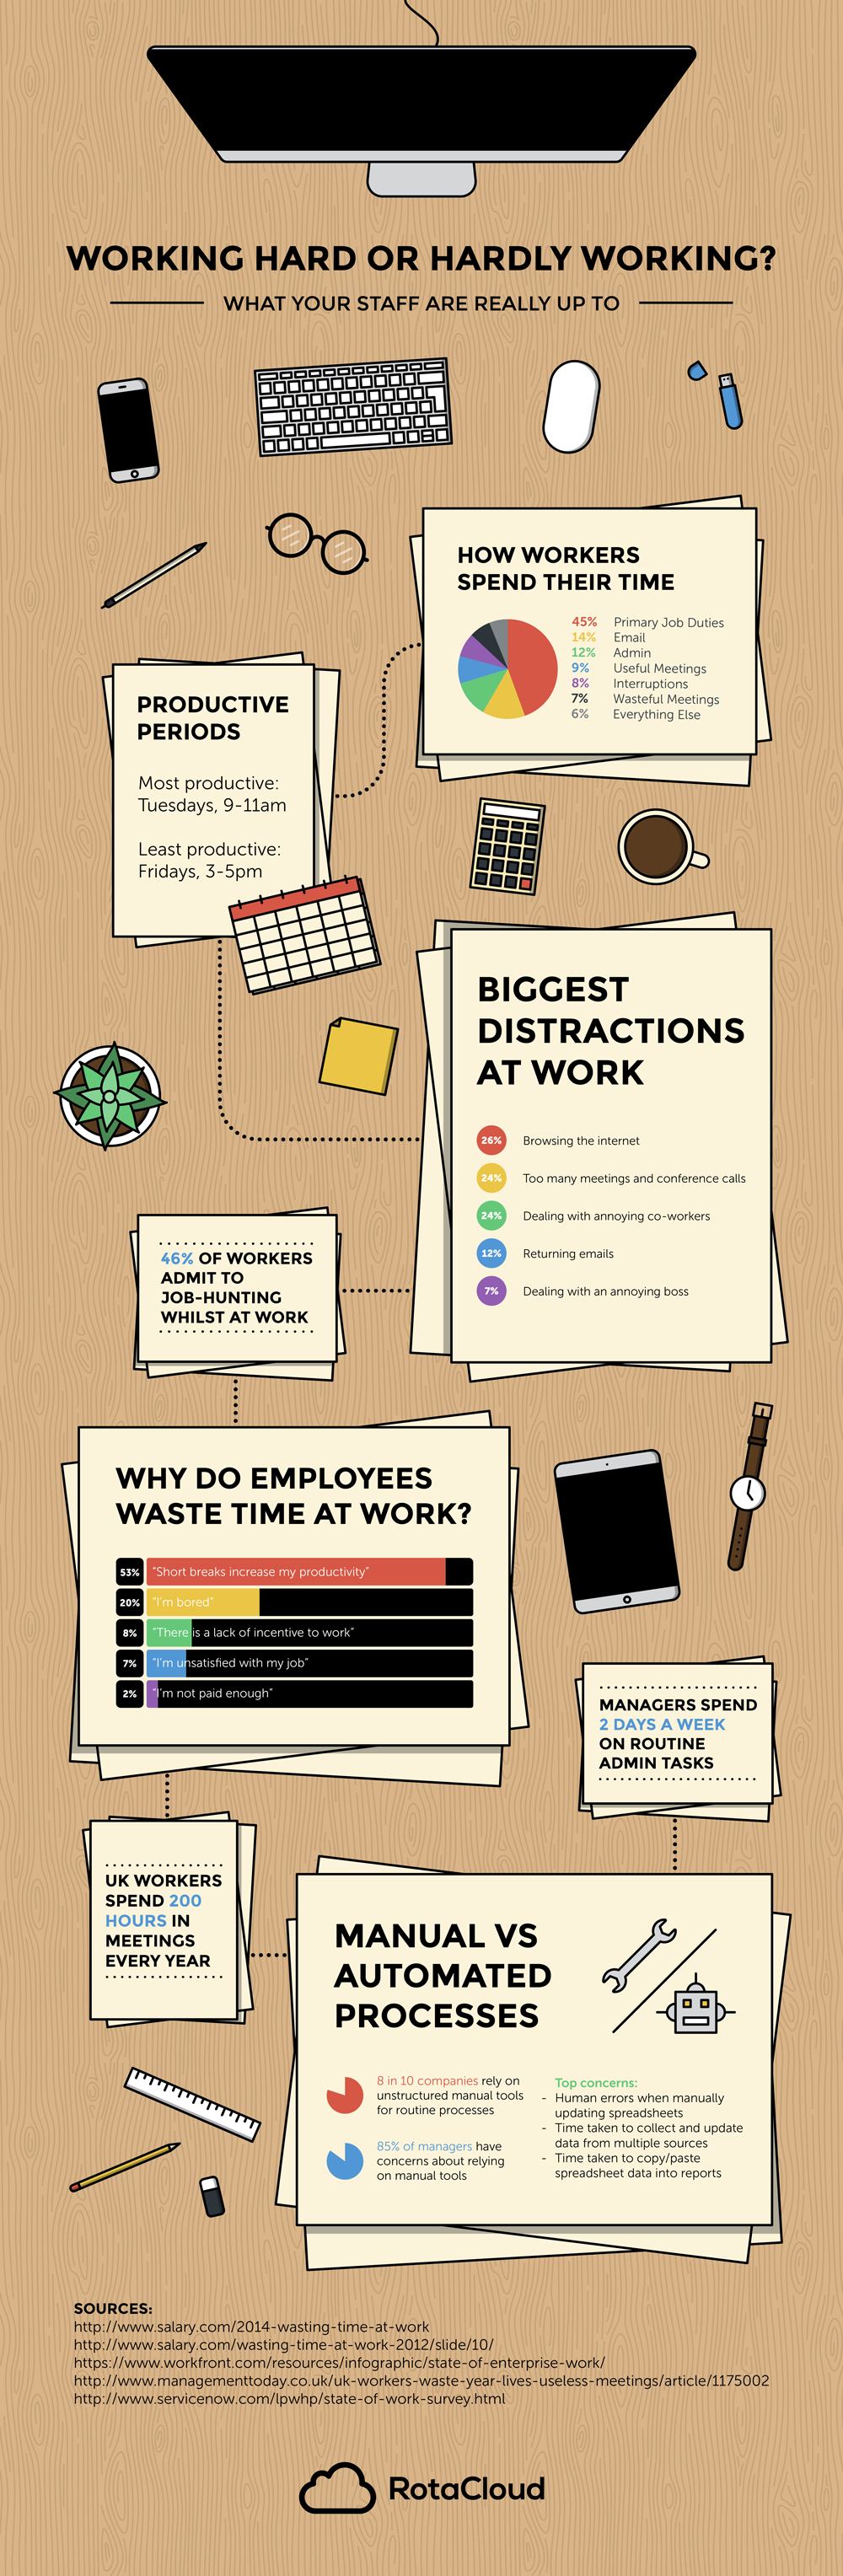 infographic with stats on time spent at work